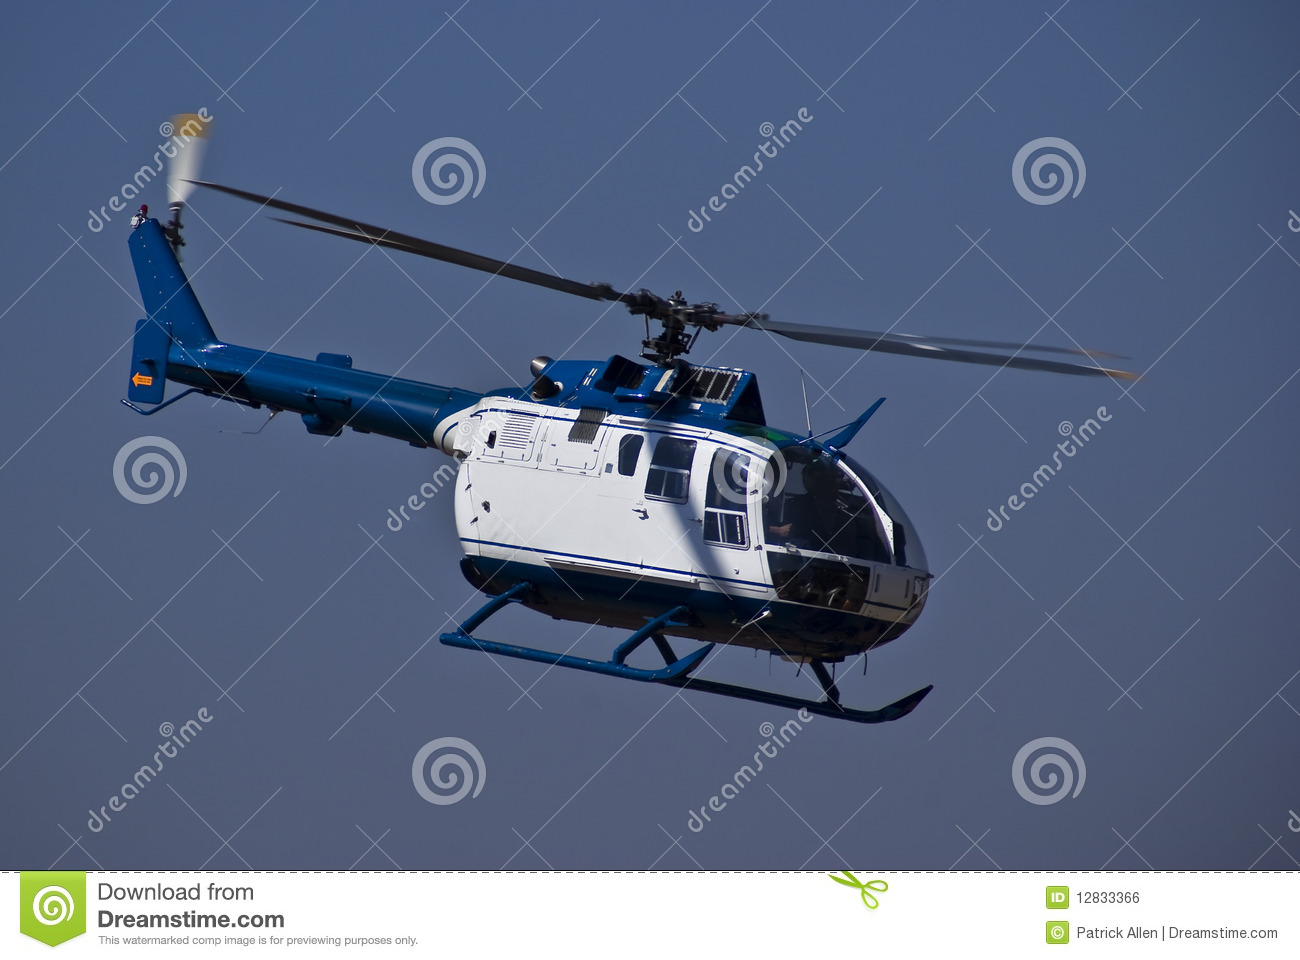 Helicopter - MBB BO-105CBS-4